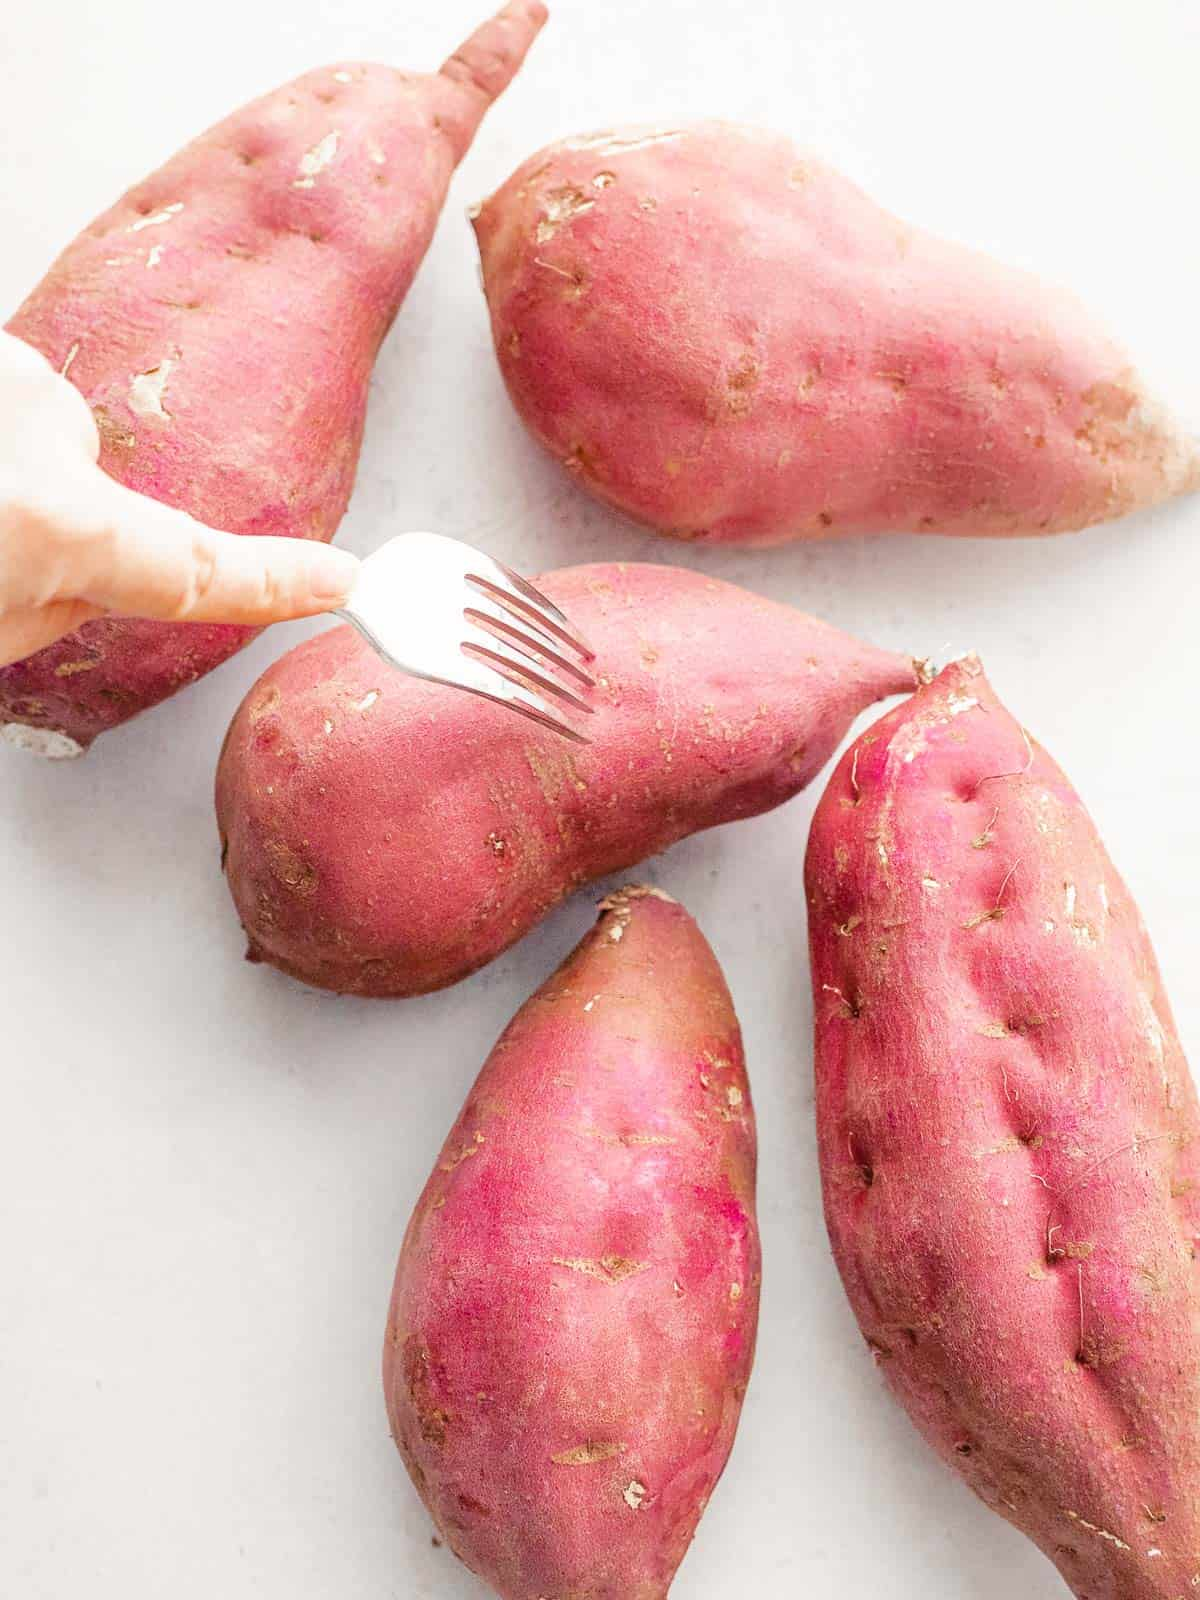 Korean sweet potatoes being poked with a fork before roasting.